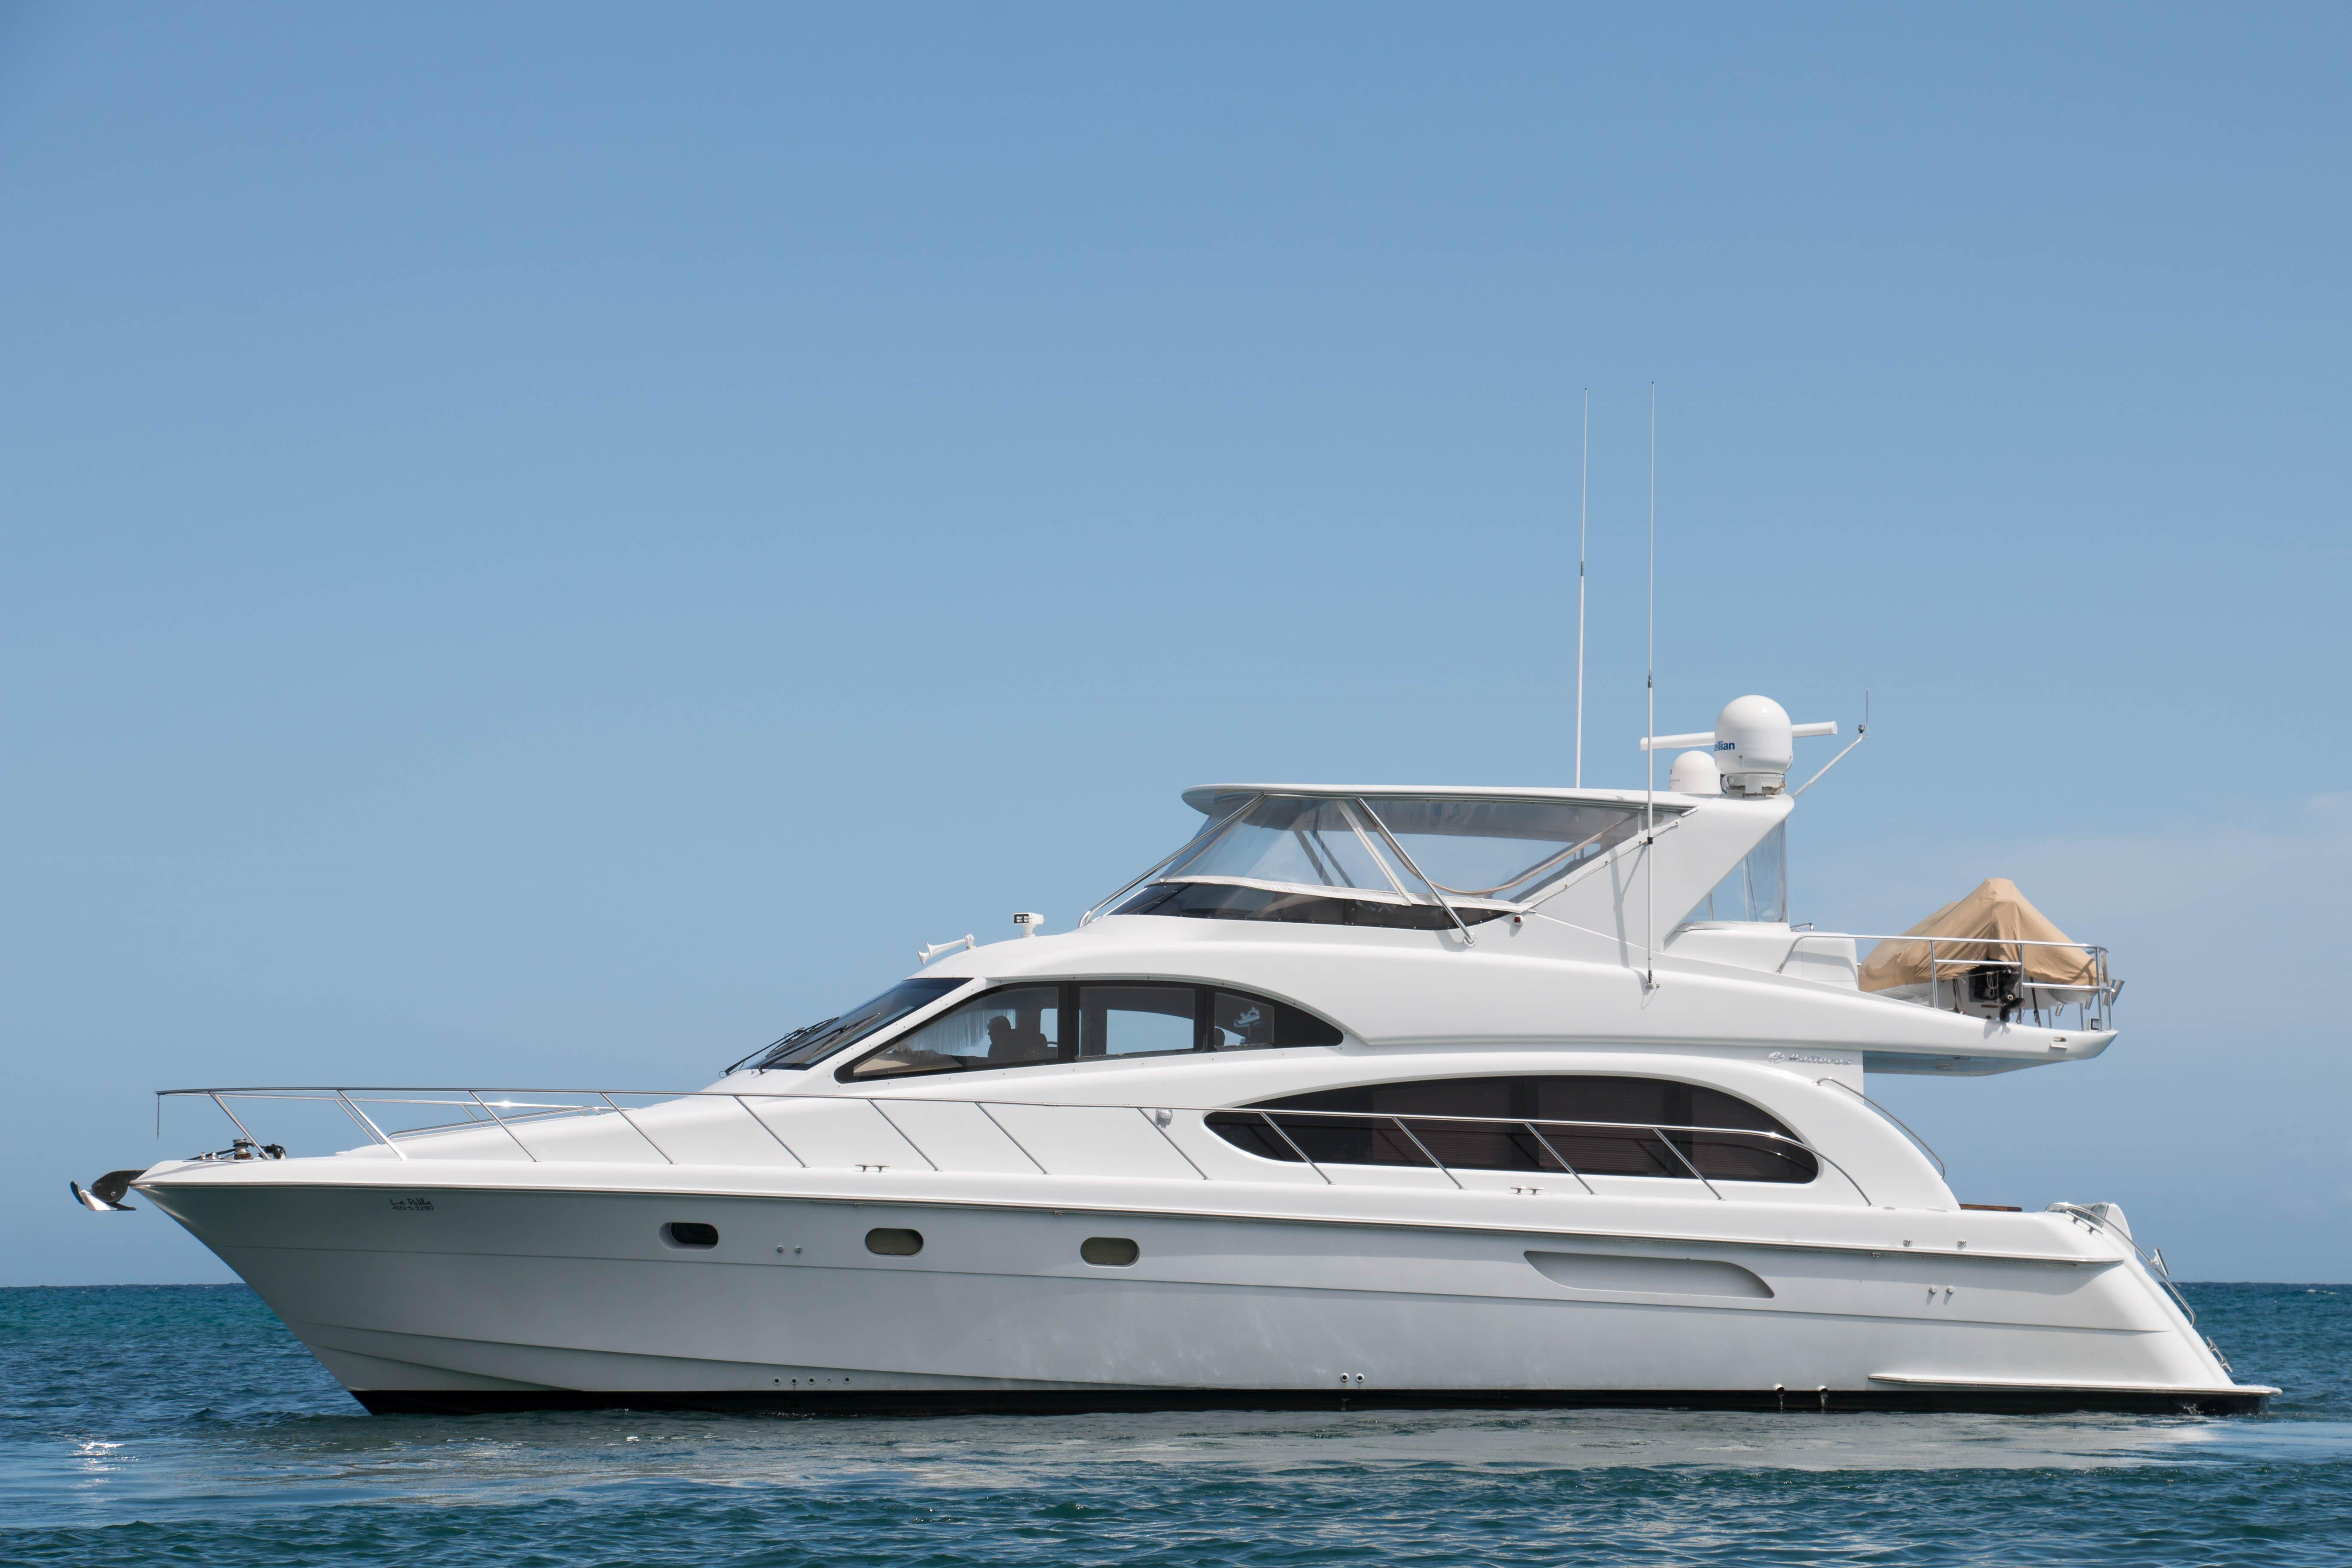 63 hatteras 2003 for sale in la guaira ve denison yacht for Large motor yachts for sale